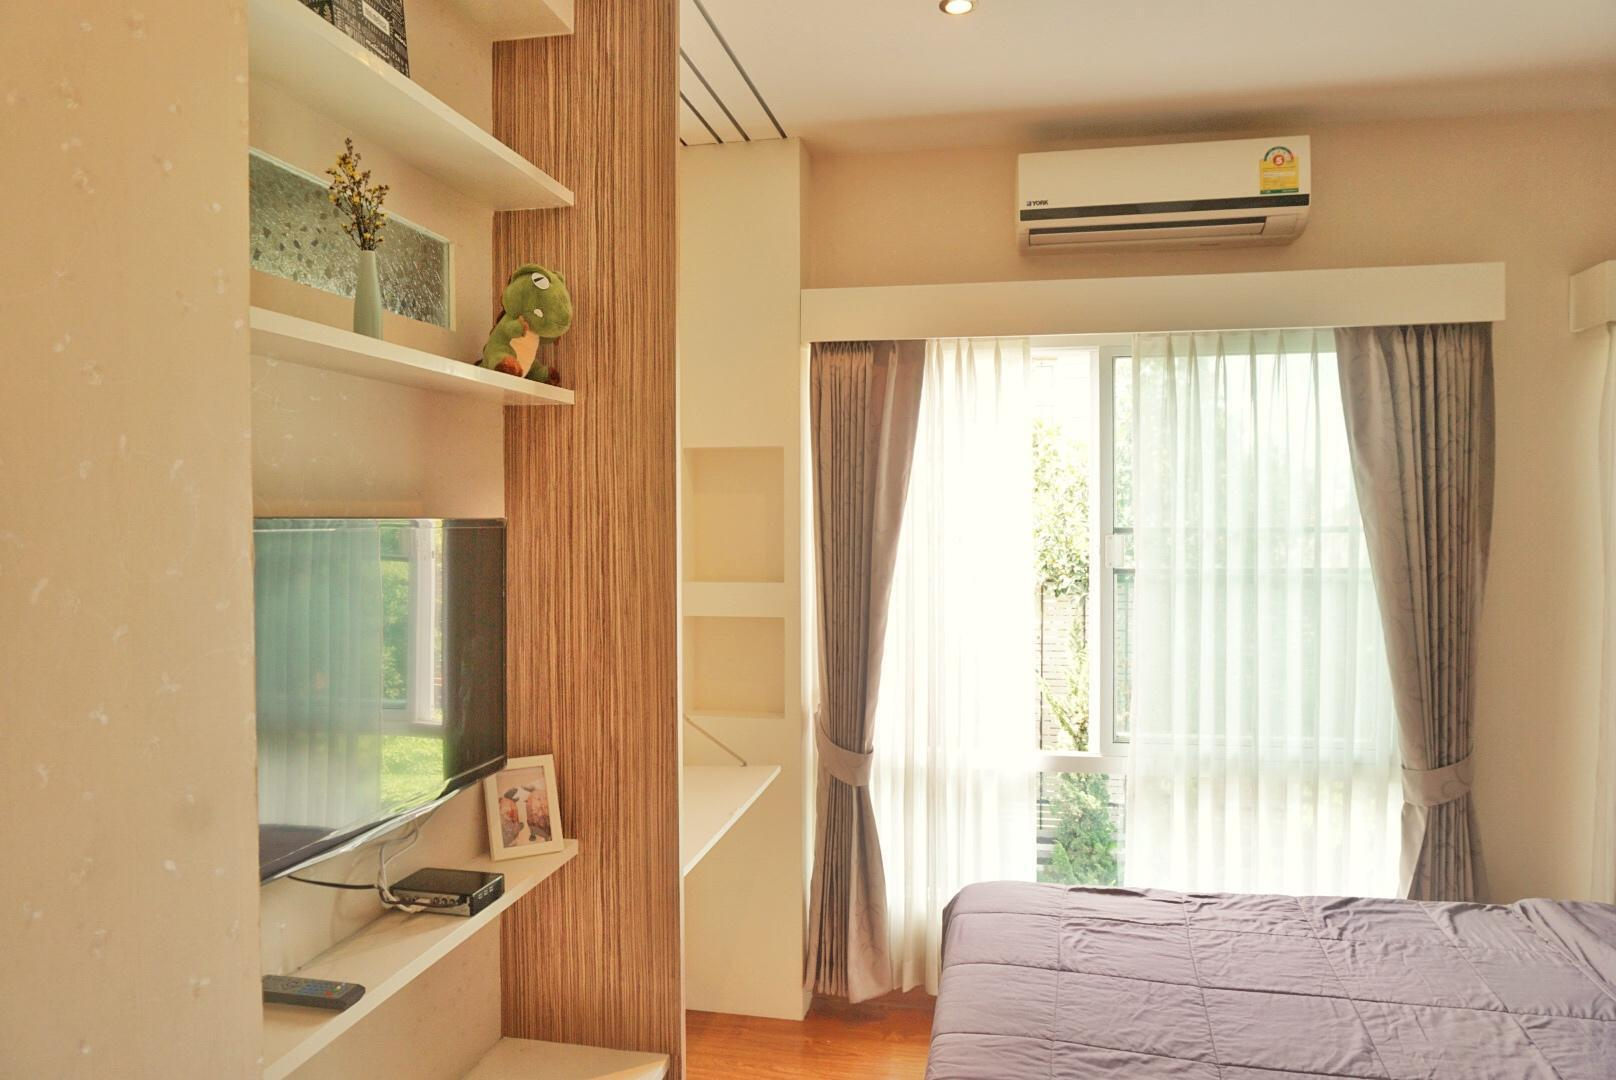 Nimman Shopping Center Lazy room perfect location Nimman Shopping Center Lazy room perfect location